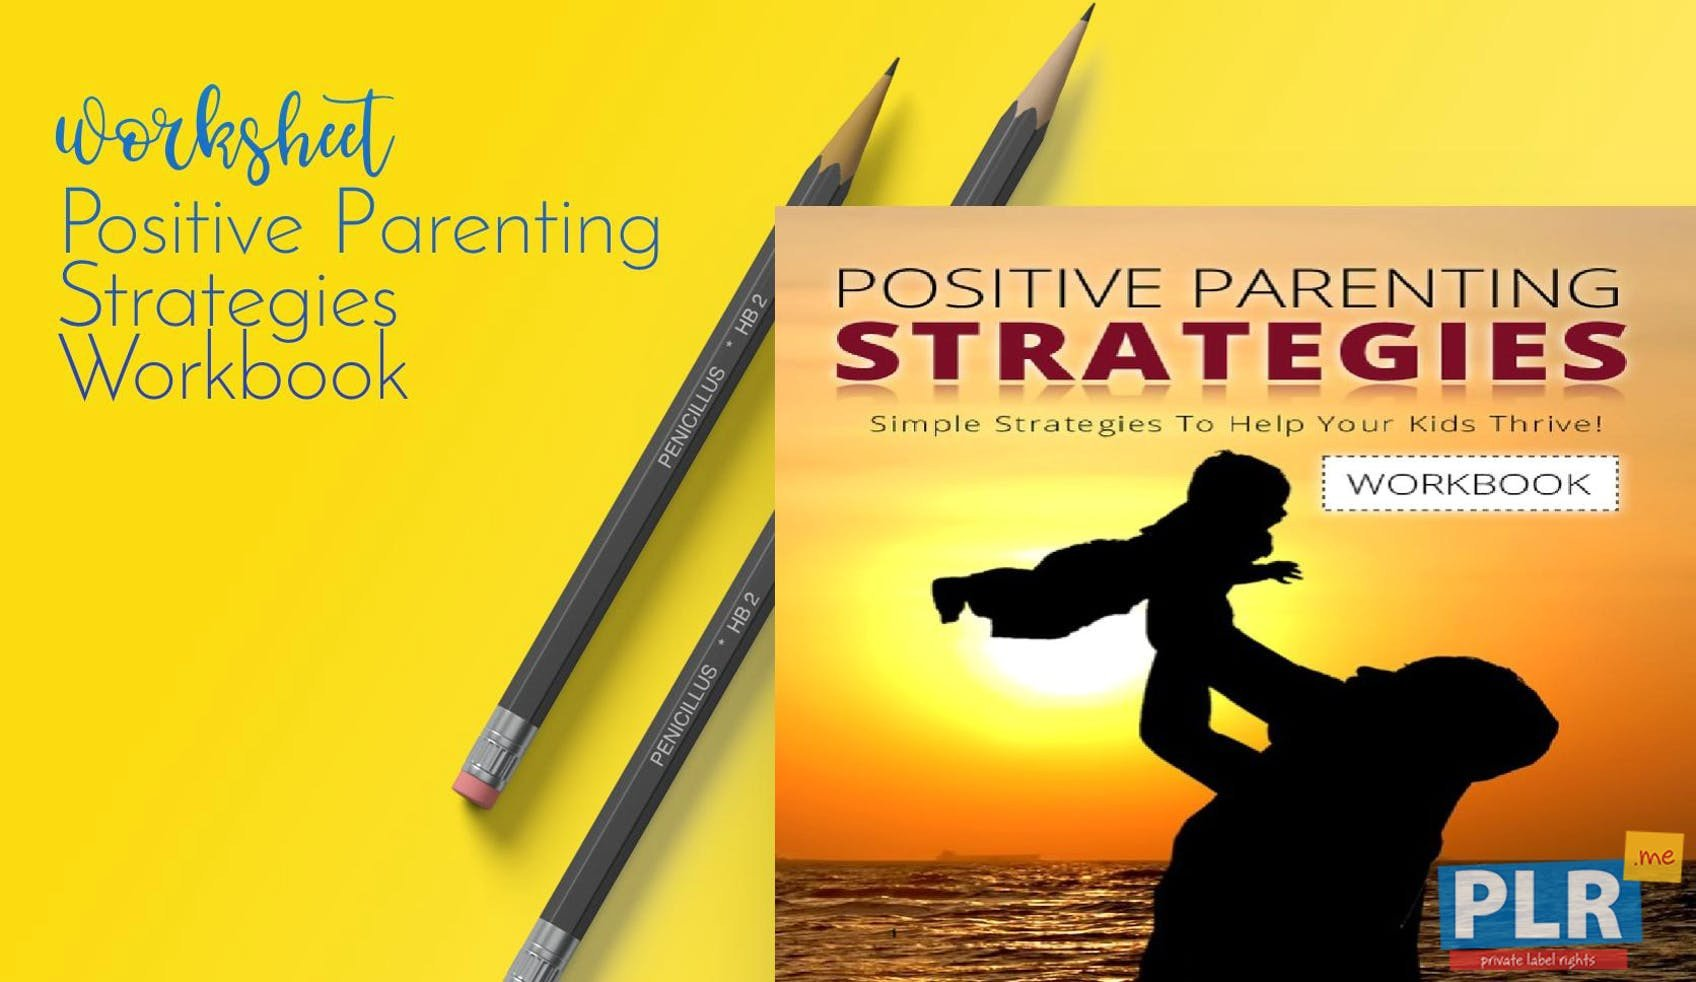 Positive Parenting Worksheets Positive Parenting Strategies Workbook